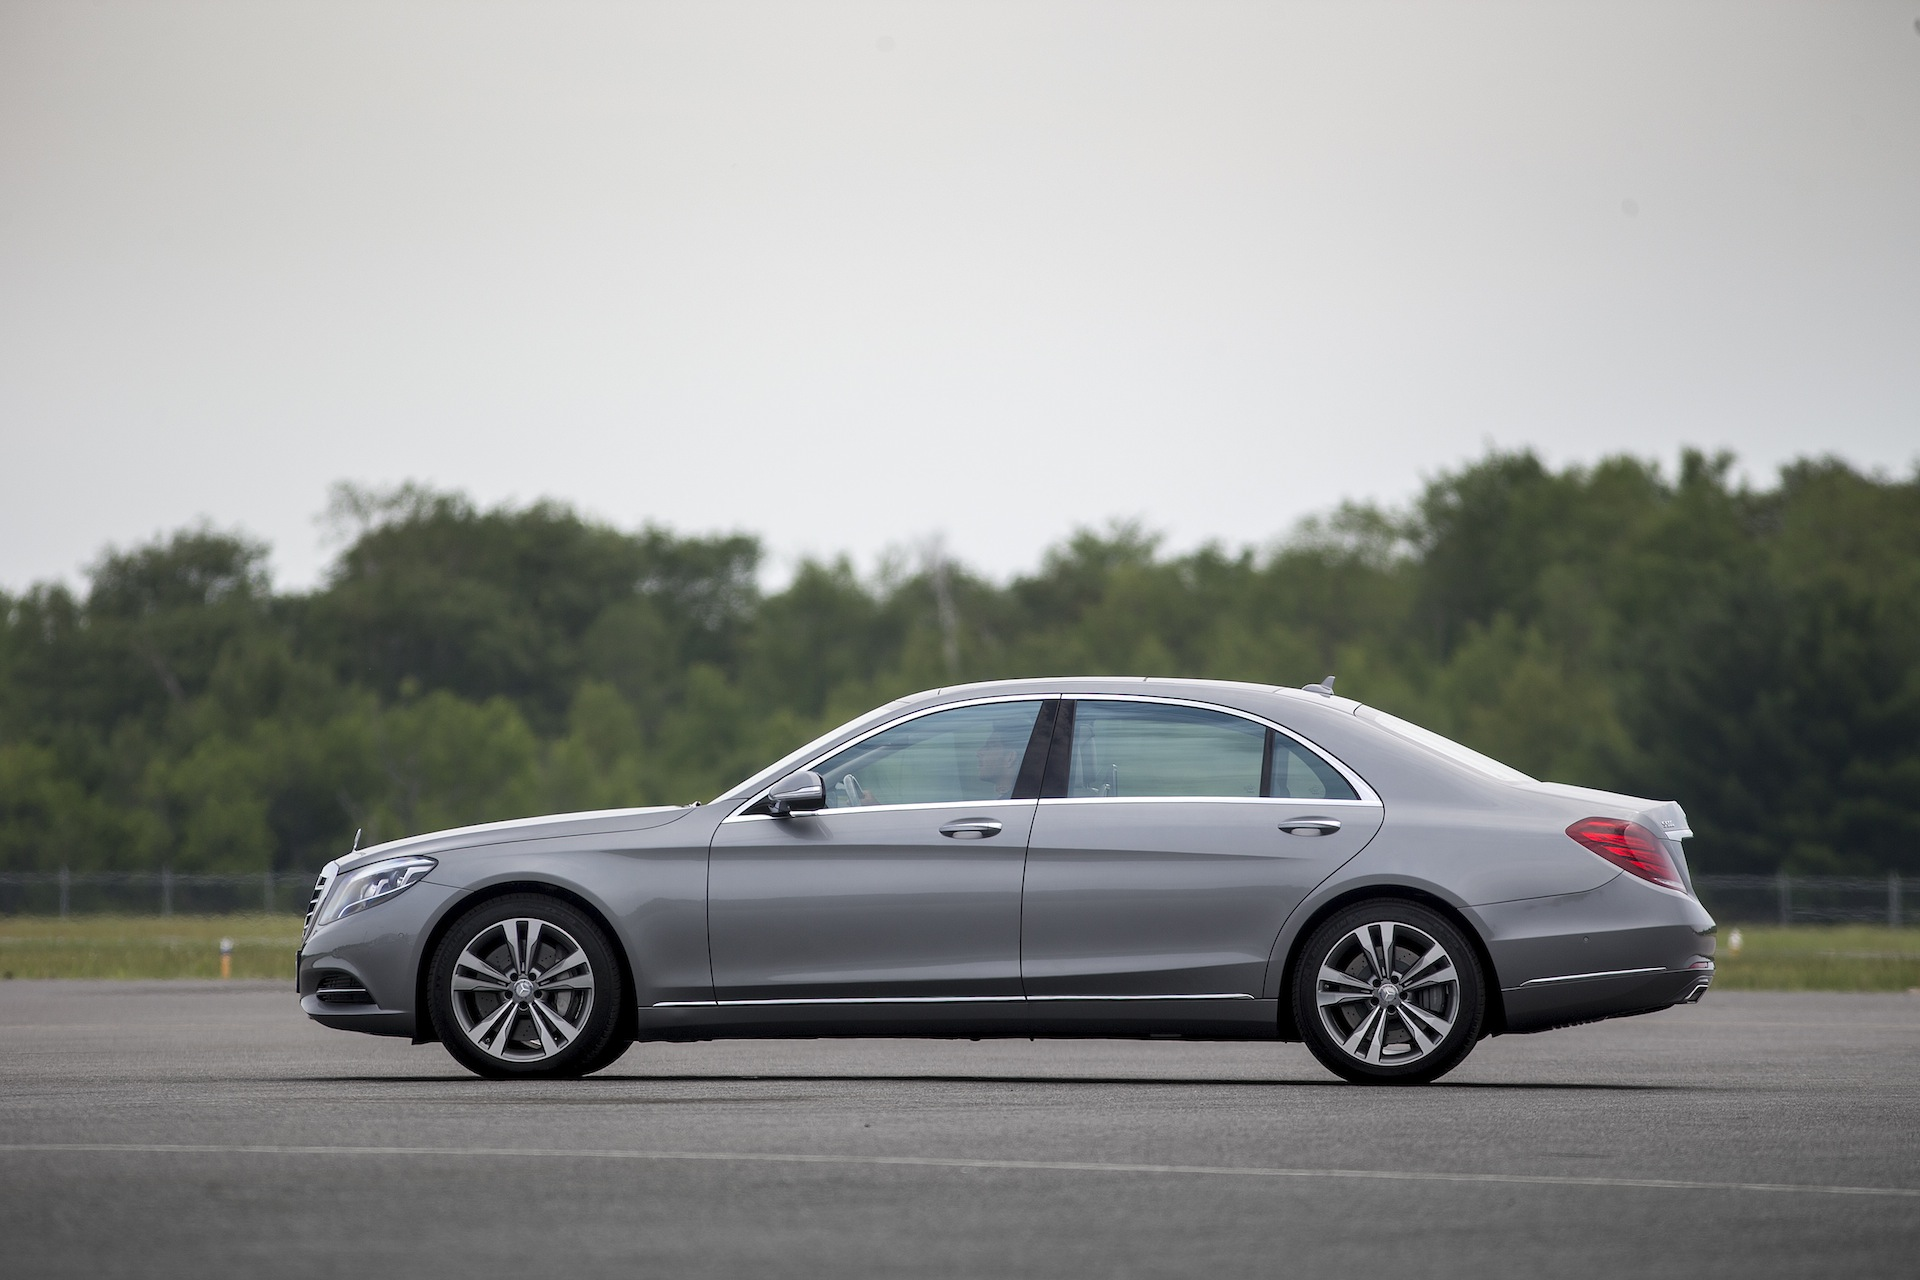 2014 mercedes benz s class first drive review. Black Bedroom Furniture Sets. Home Design Ideas